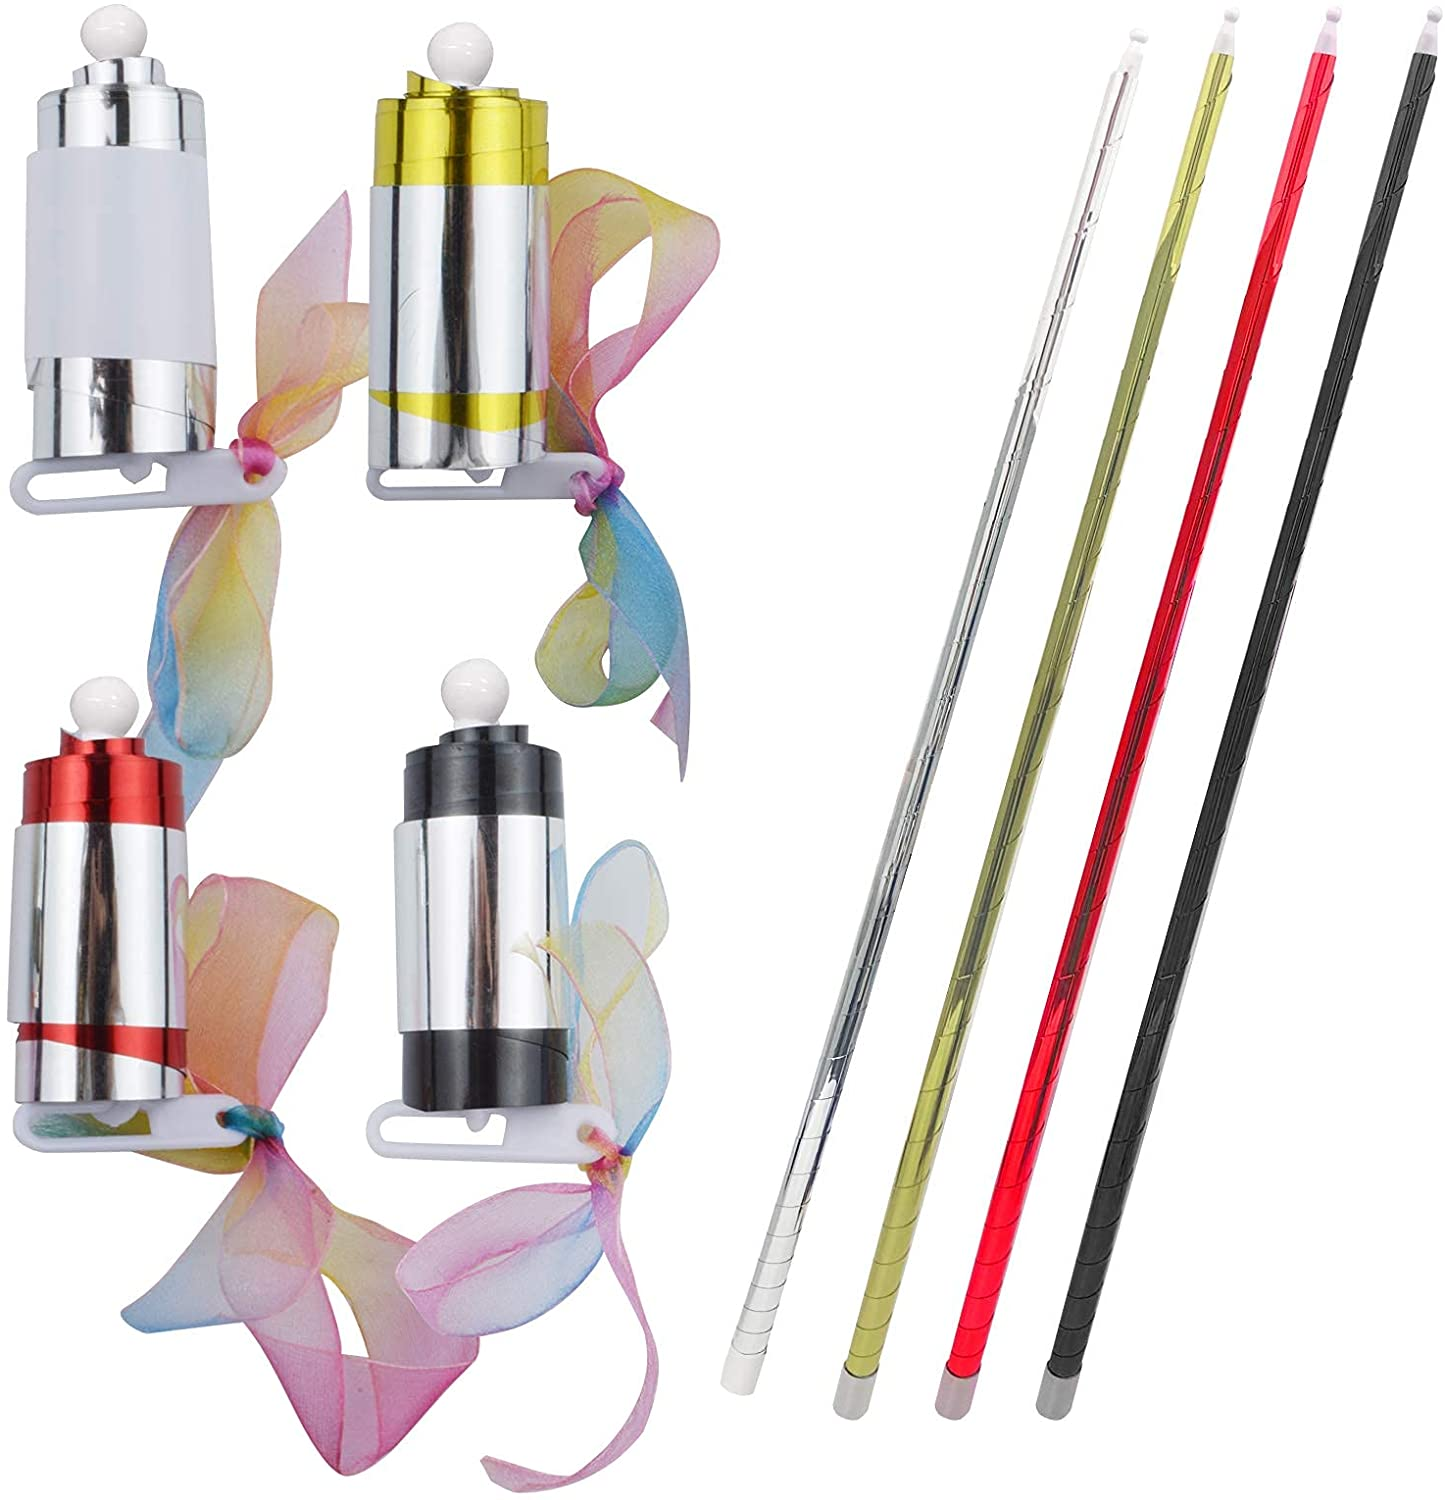 4 Pack Magic Pocket Staff Collapsible 100% quality Philadelphia Mall warranty Appearing Metal 35.4 Cane